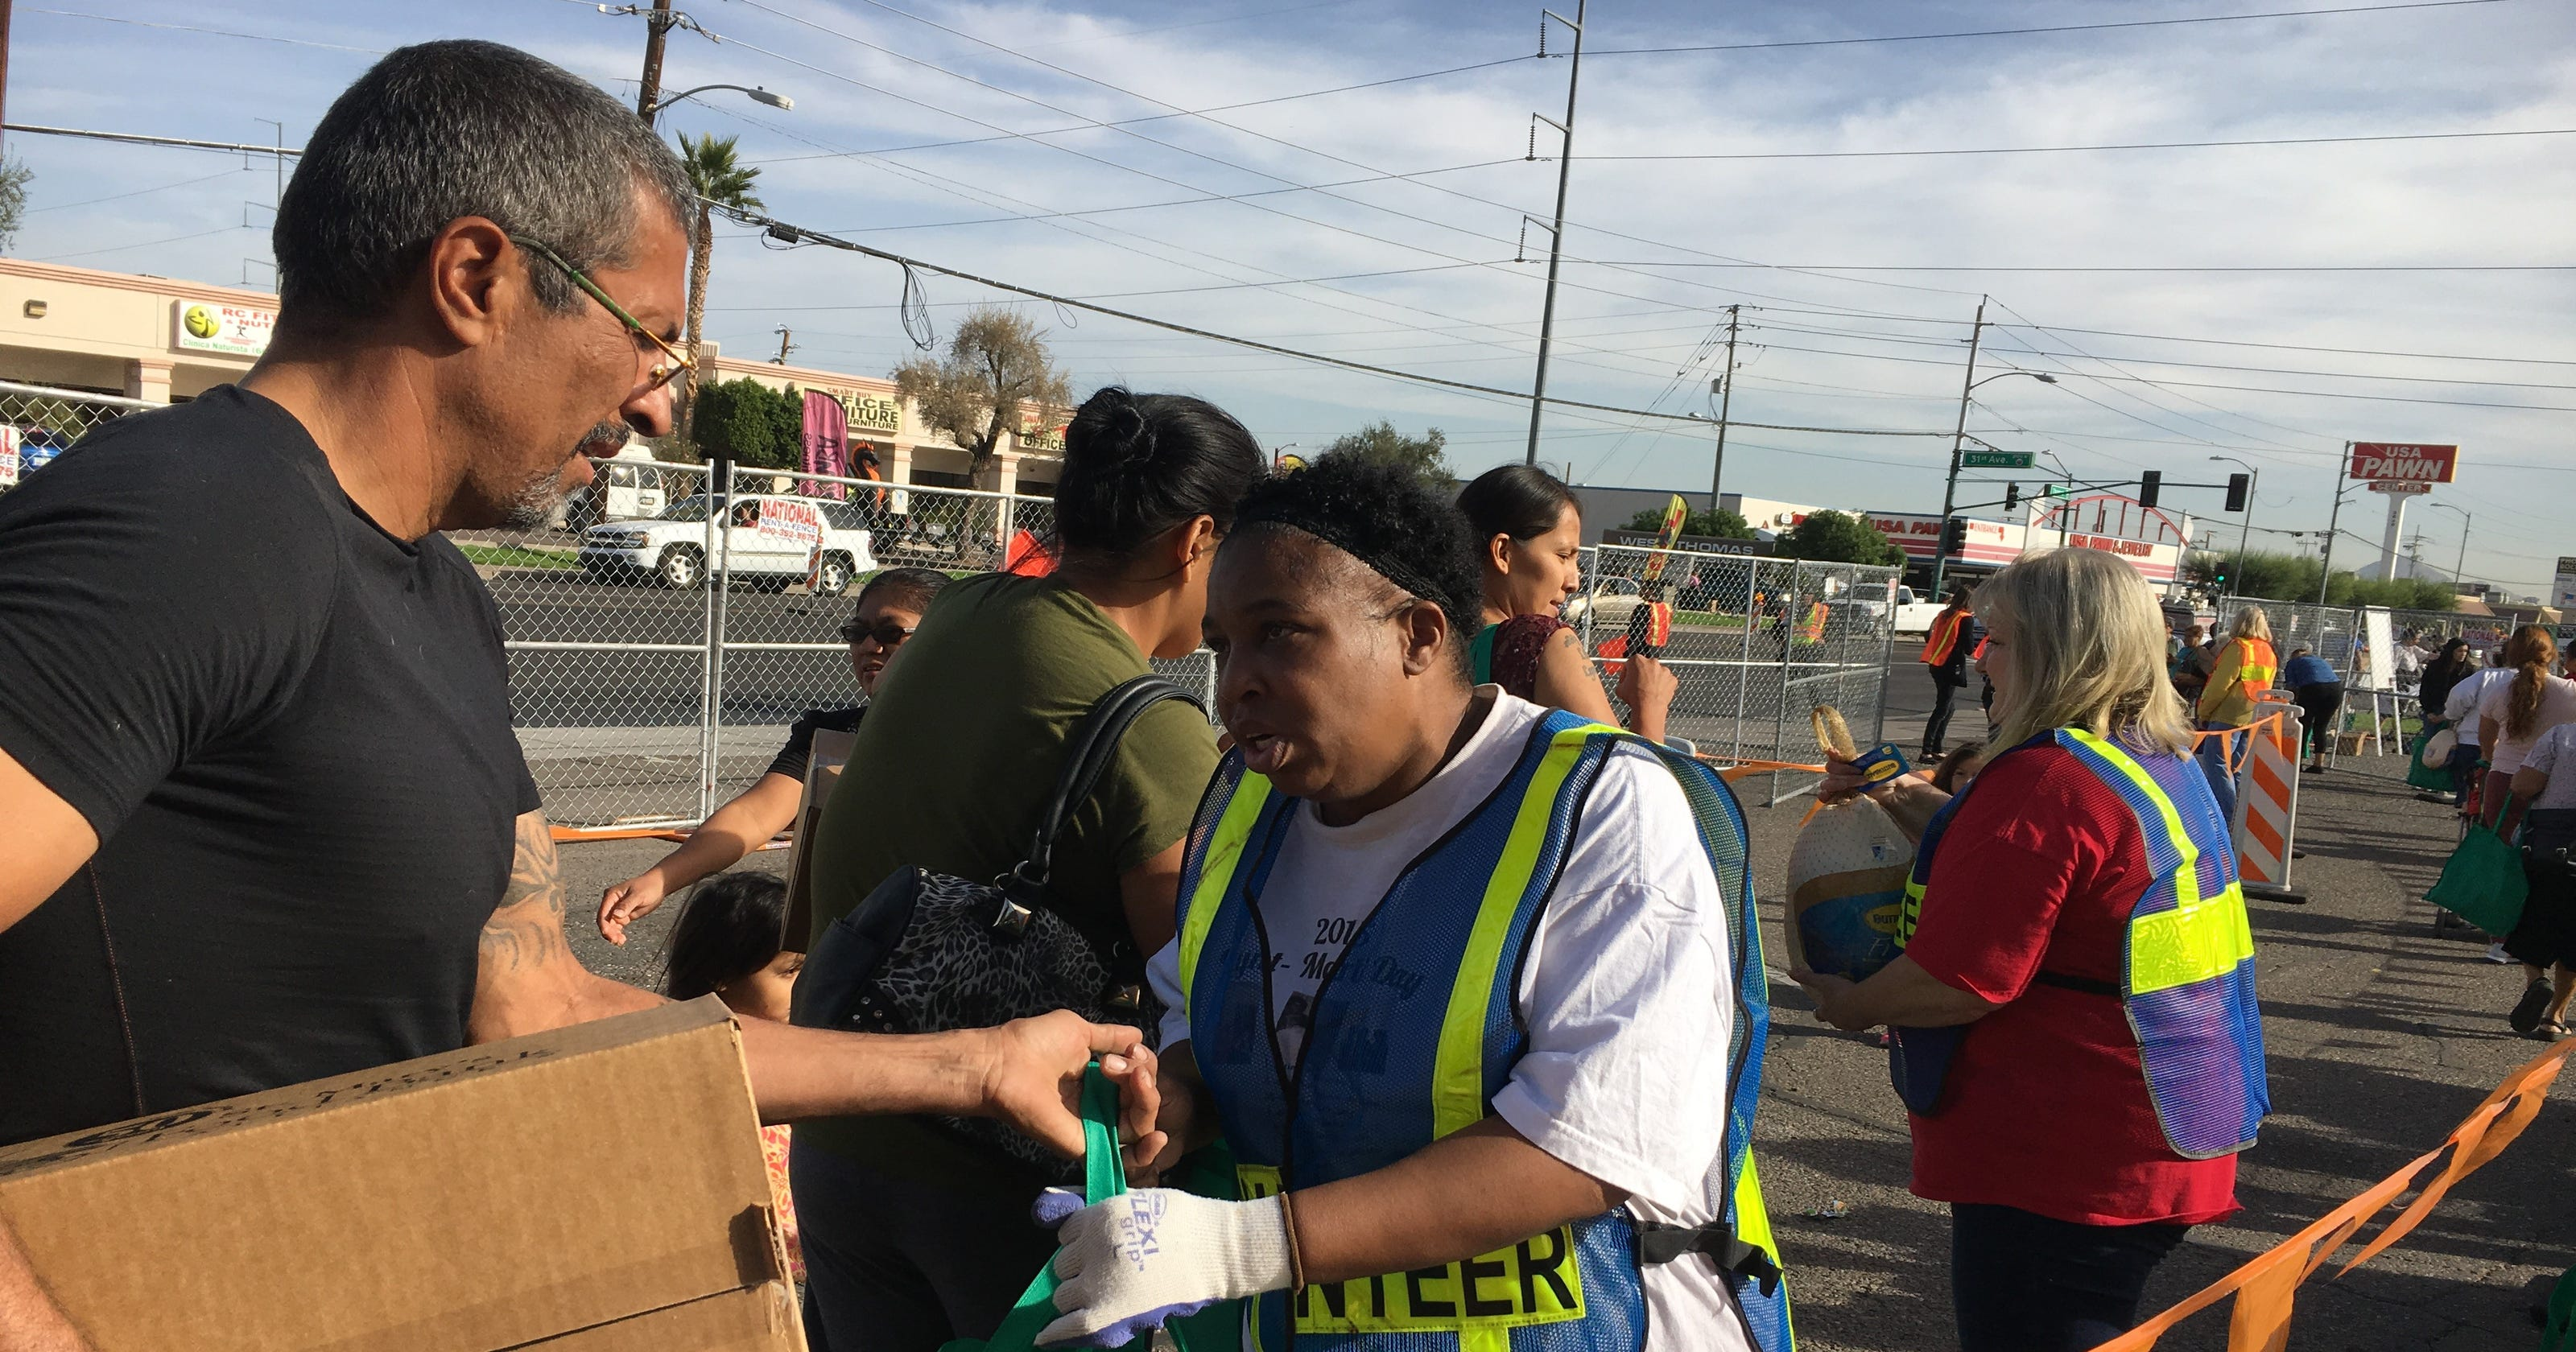 St. Mary's Food Bank 1,500 turkeys away from Thanksgiving ...